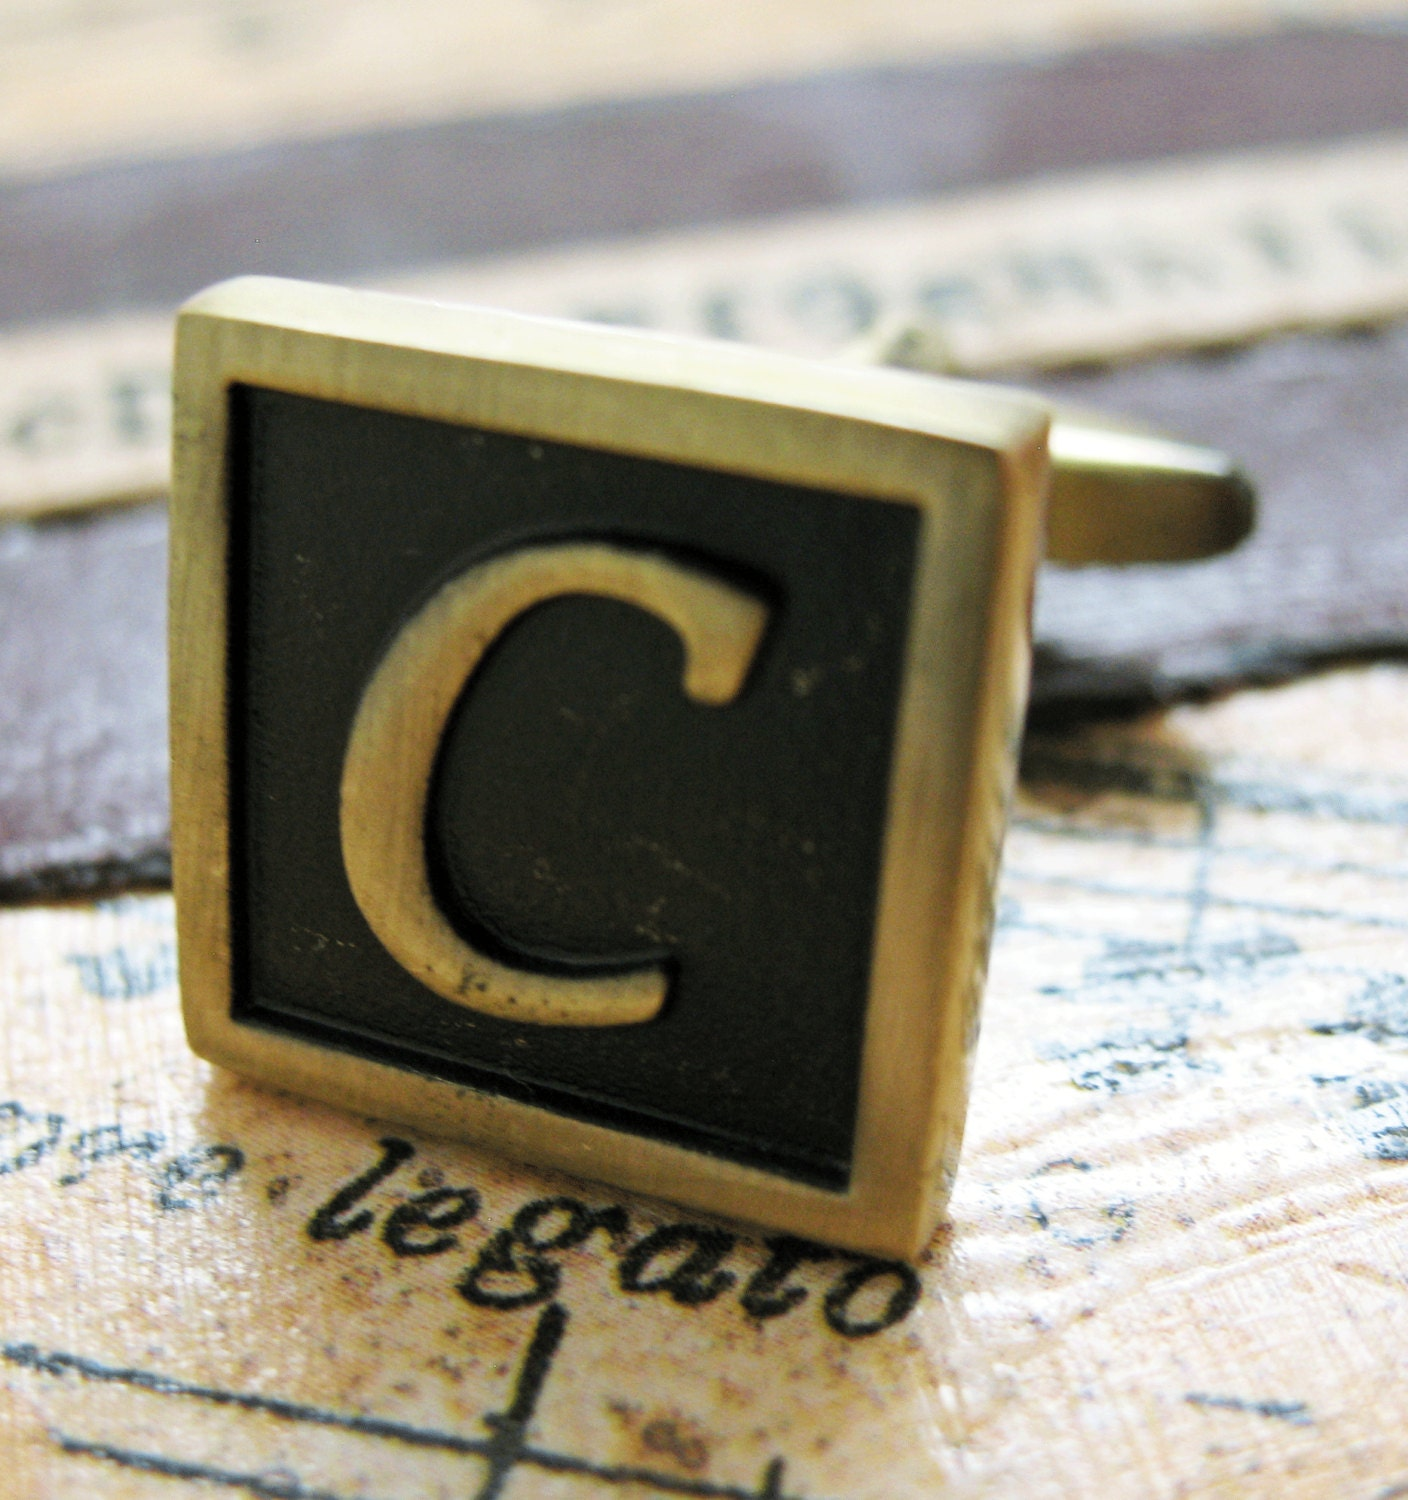 c initial cufflinks antique brass square 3 d letter vintage english lettering cuff links groom